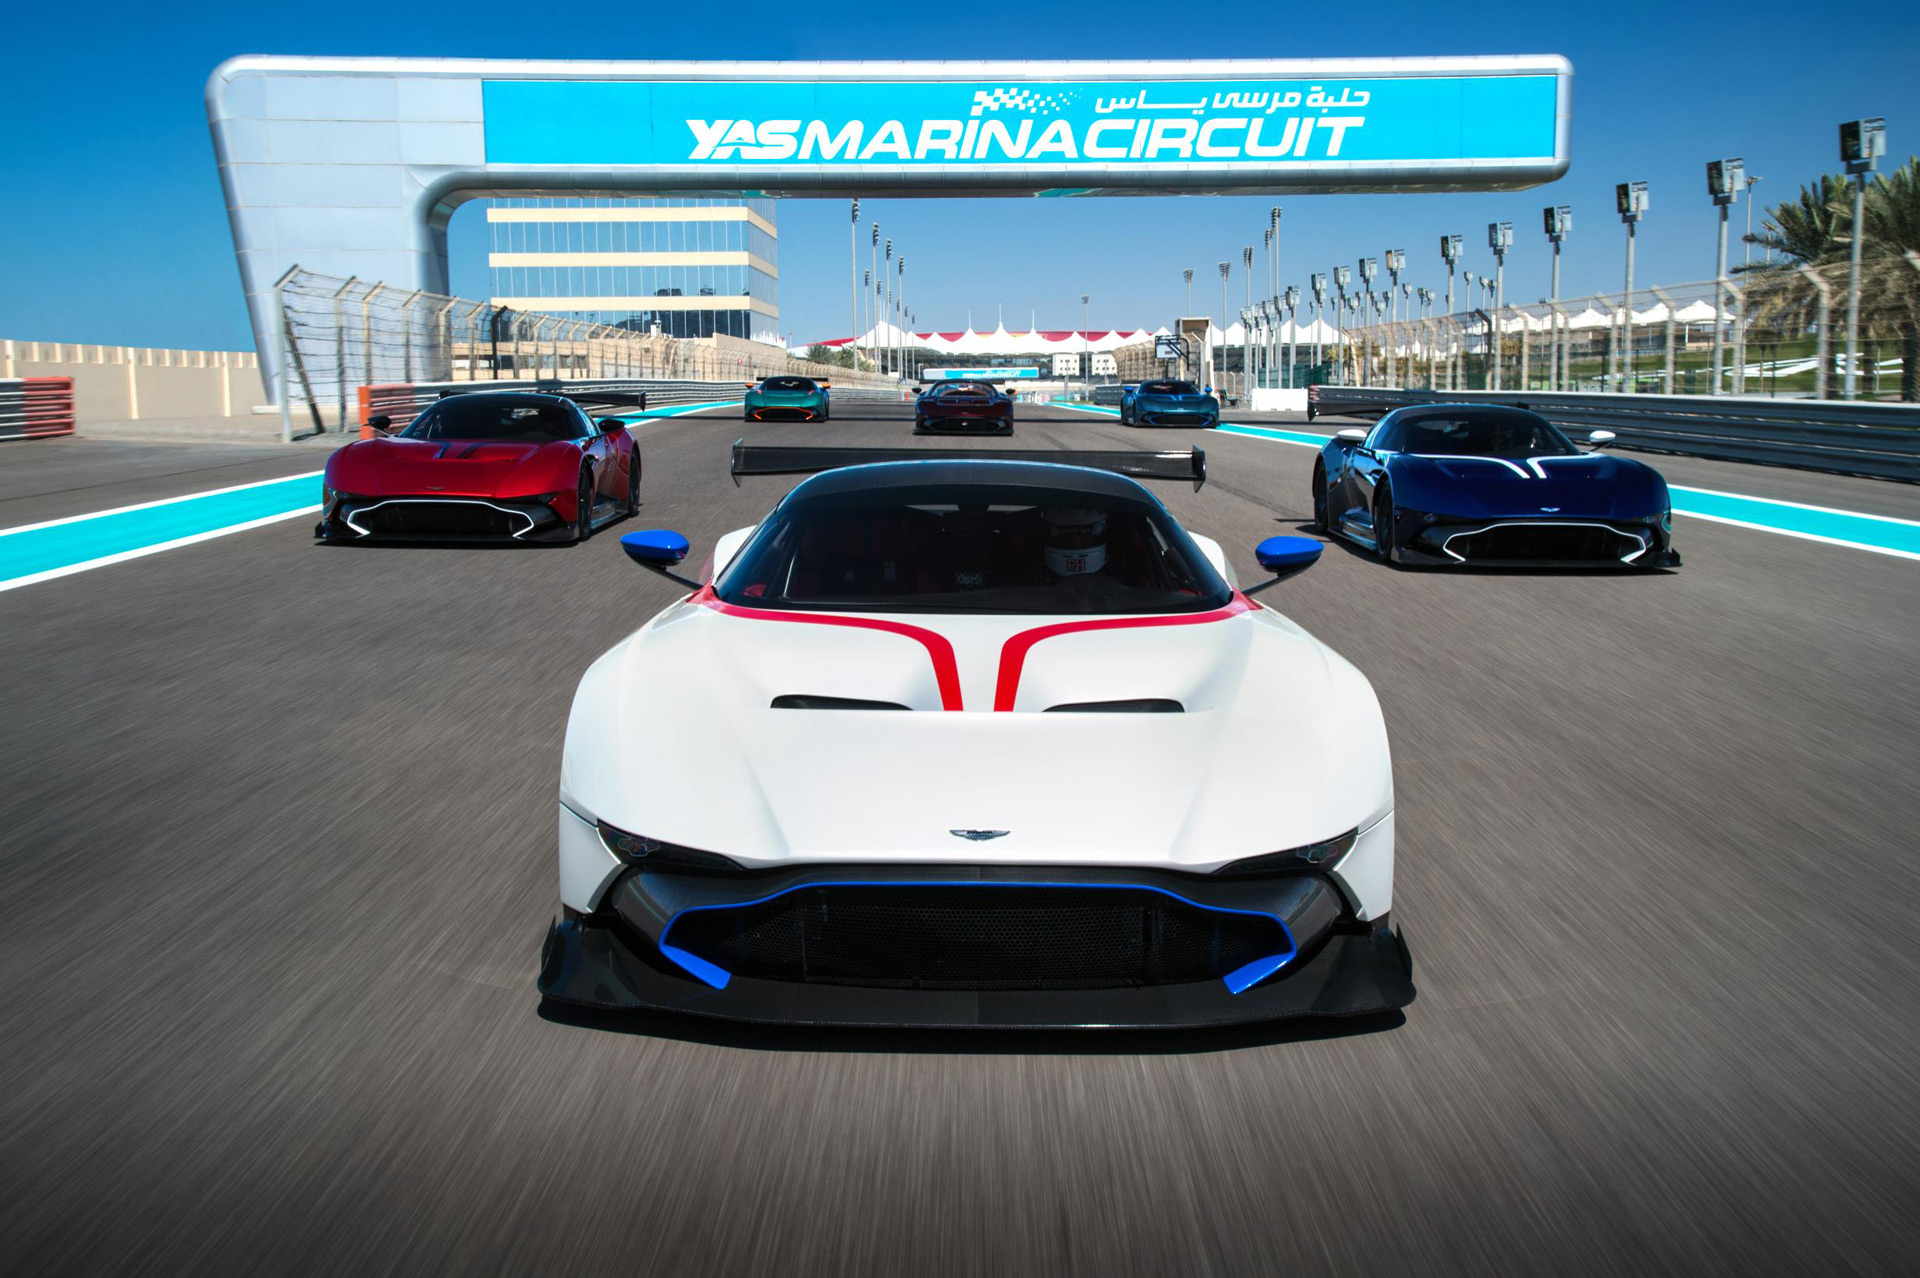 aston martin vulcan driver course gets underway in abu dhabi